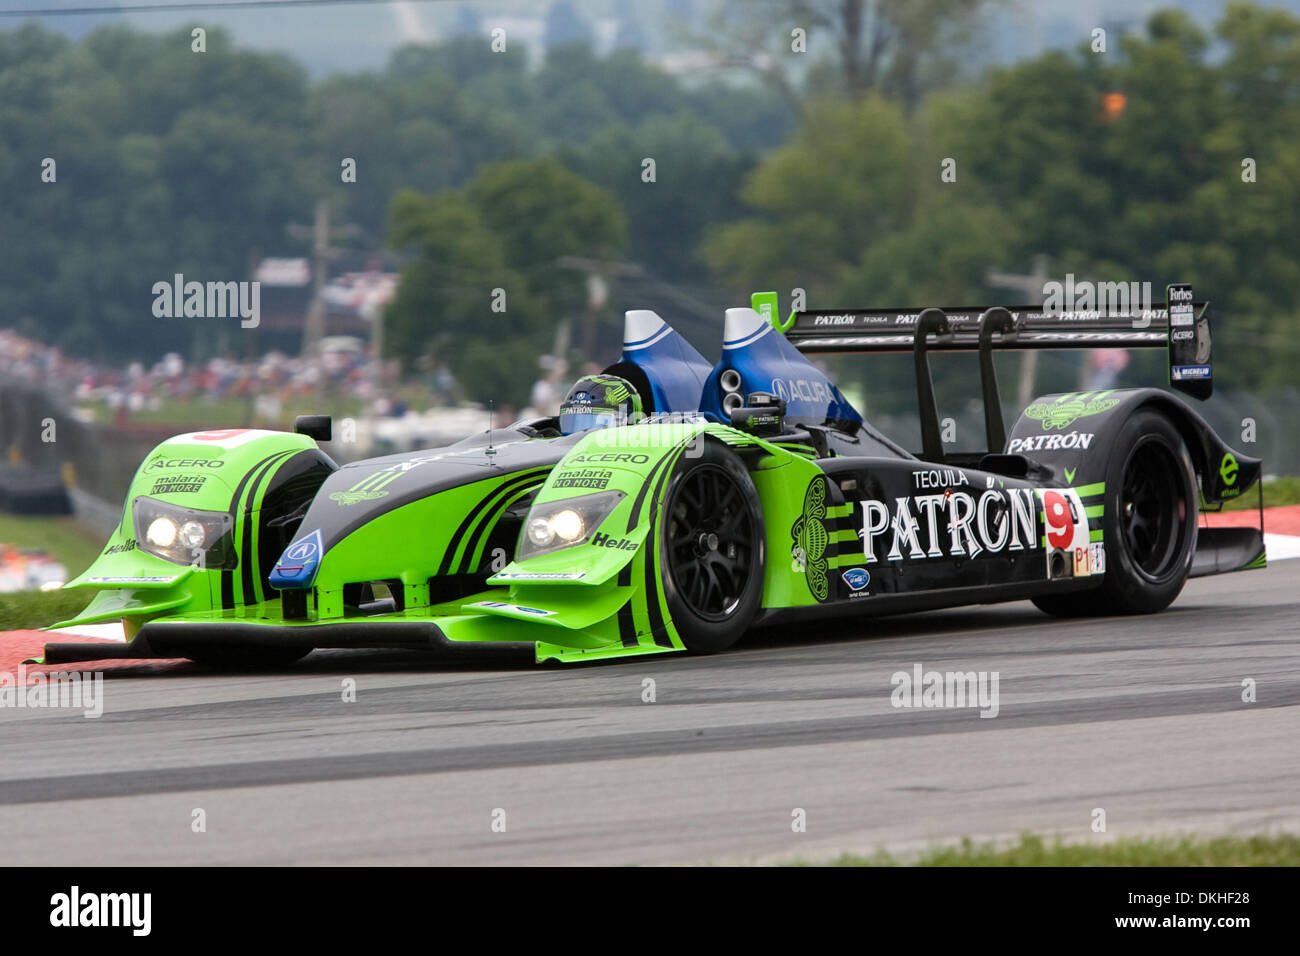 08 August 2009: The 9 Patron Highcroft Racing Car Driven By David Brabham  And Scott Sharp During Round 6 Of The American LeMans Series Acura Sports  Car ...